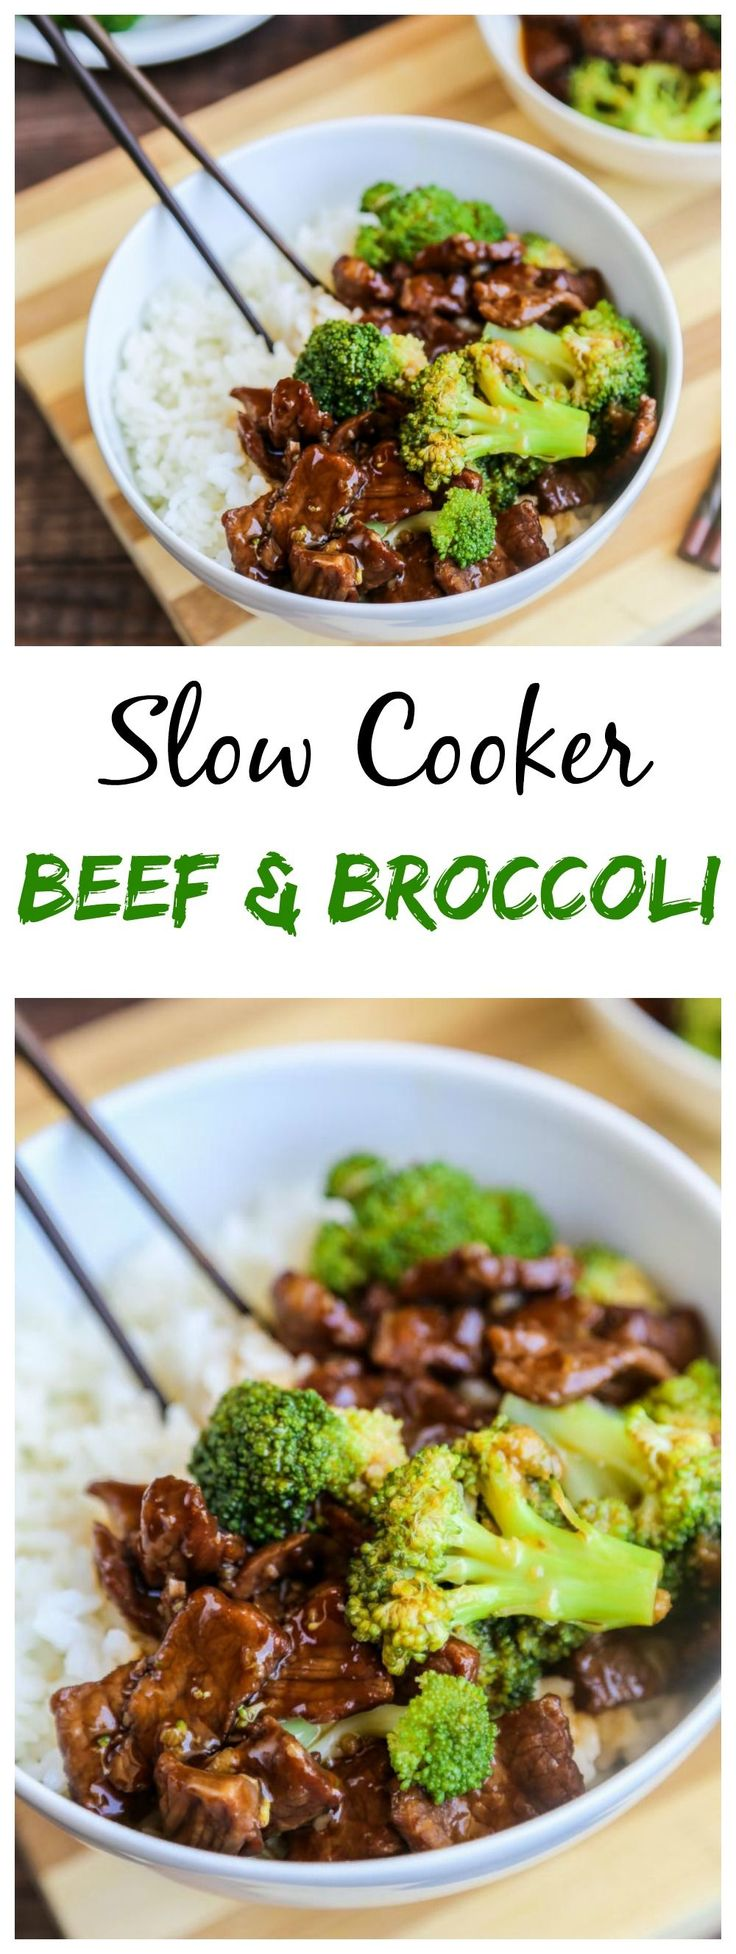 Slow cooker Beef & Broccoli. This is much better than take out!